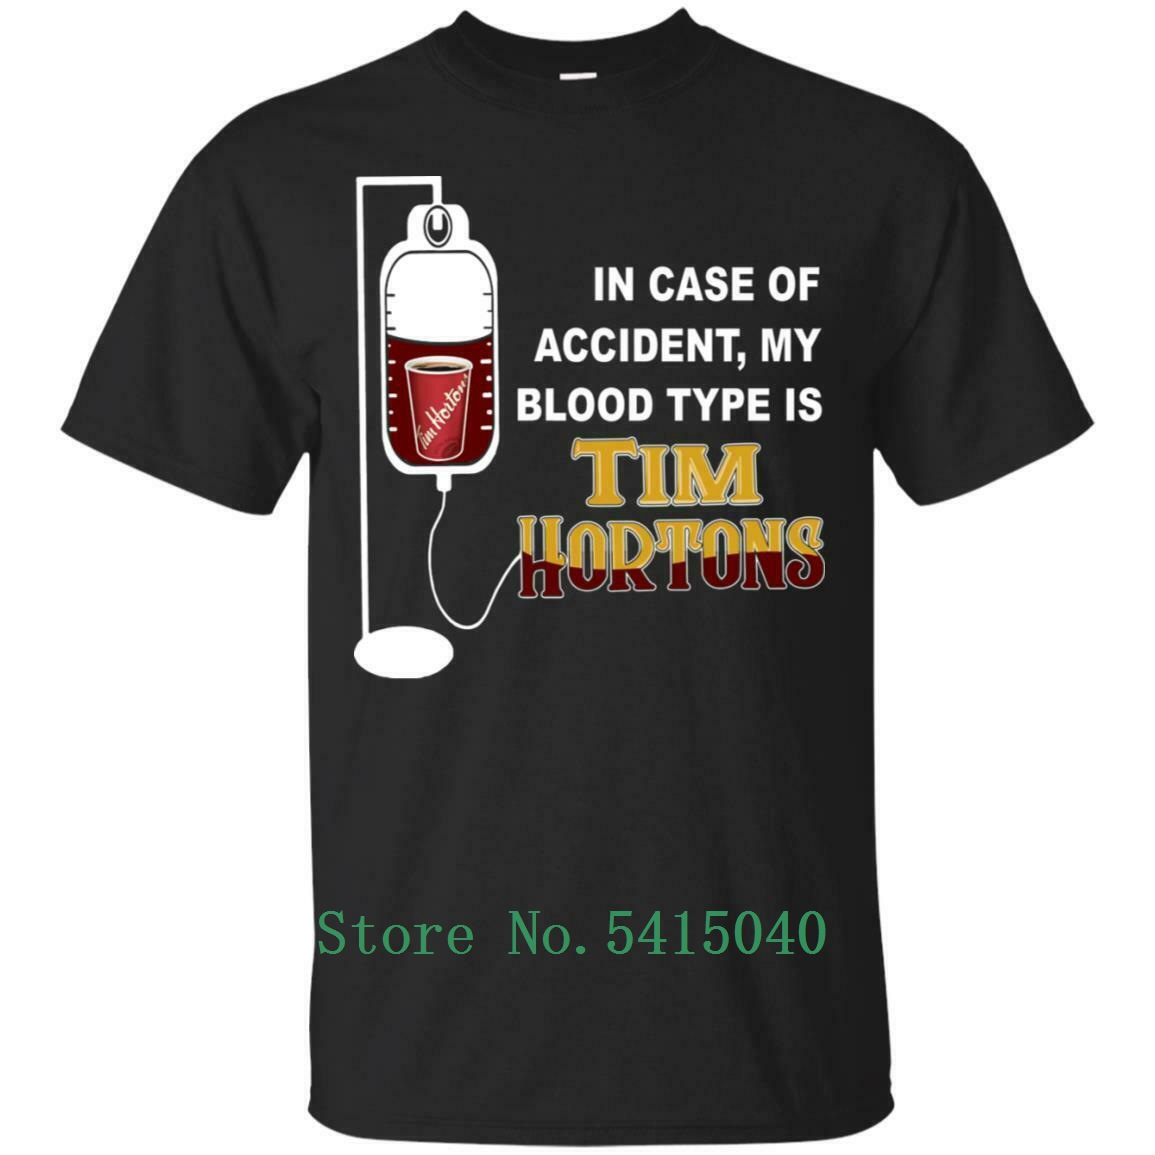 In Case Of Accident My Blood Type Is Tim Hortons Funny Black T-Shirt S-5xl Men Women Unisex Fashion Tshirt